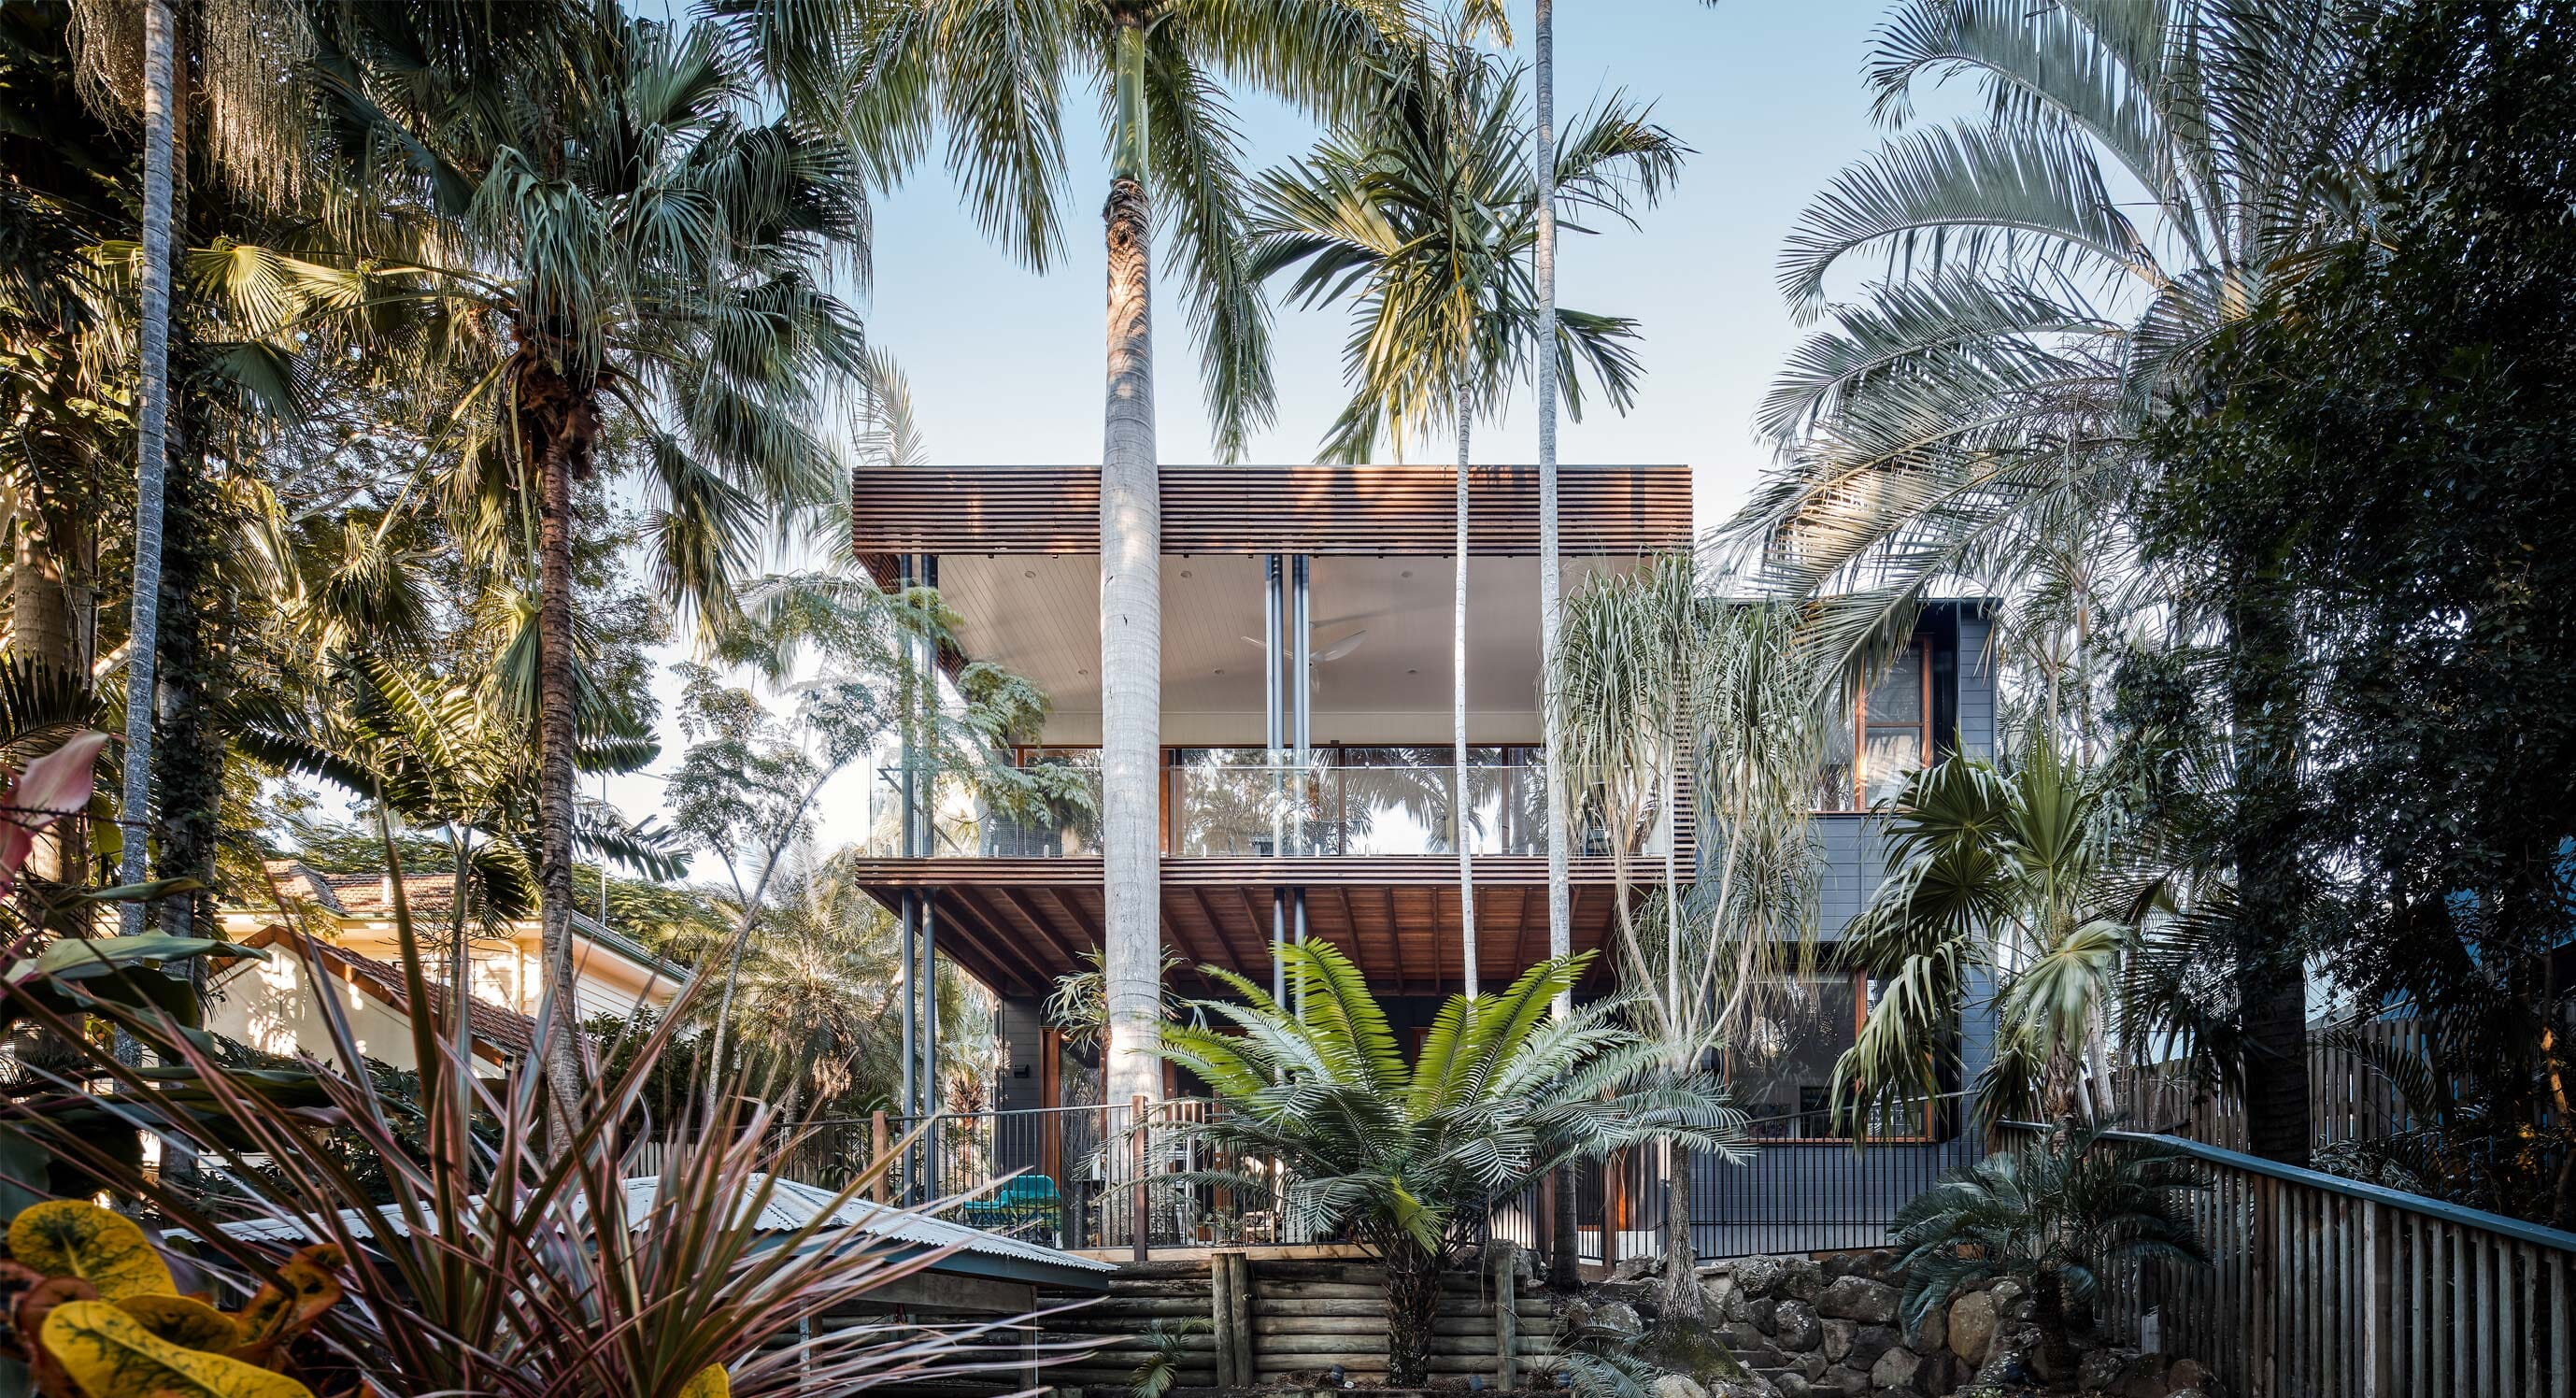 Keith Street House: A relationship with the environment